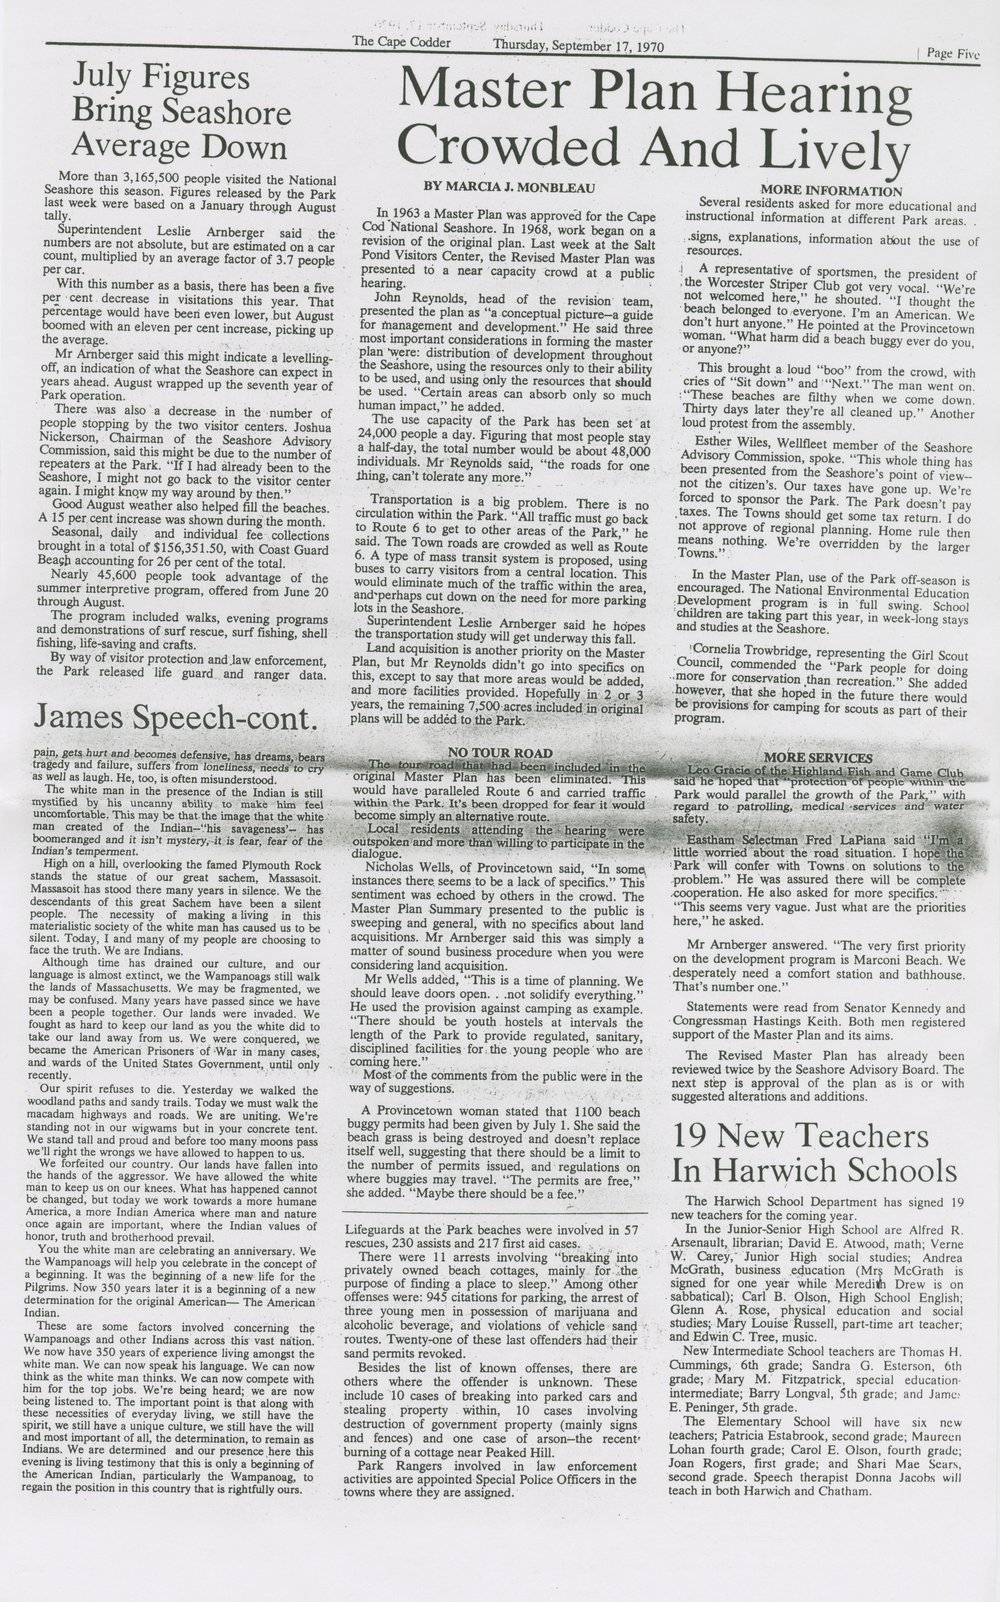 Plymouth Historical Museum Archives 350th Celebration Plymouth, MA 1970 Memorabilia Frank James Article (part 2)